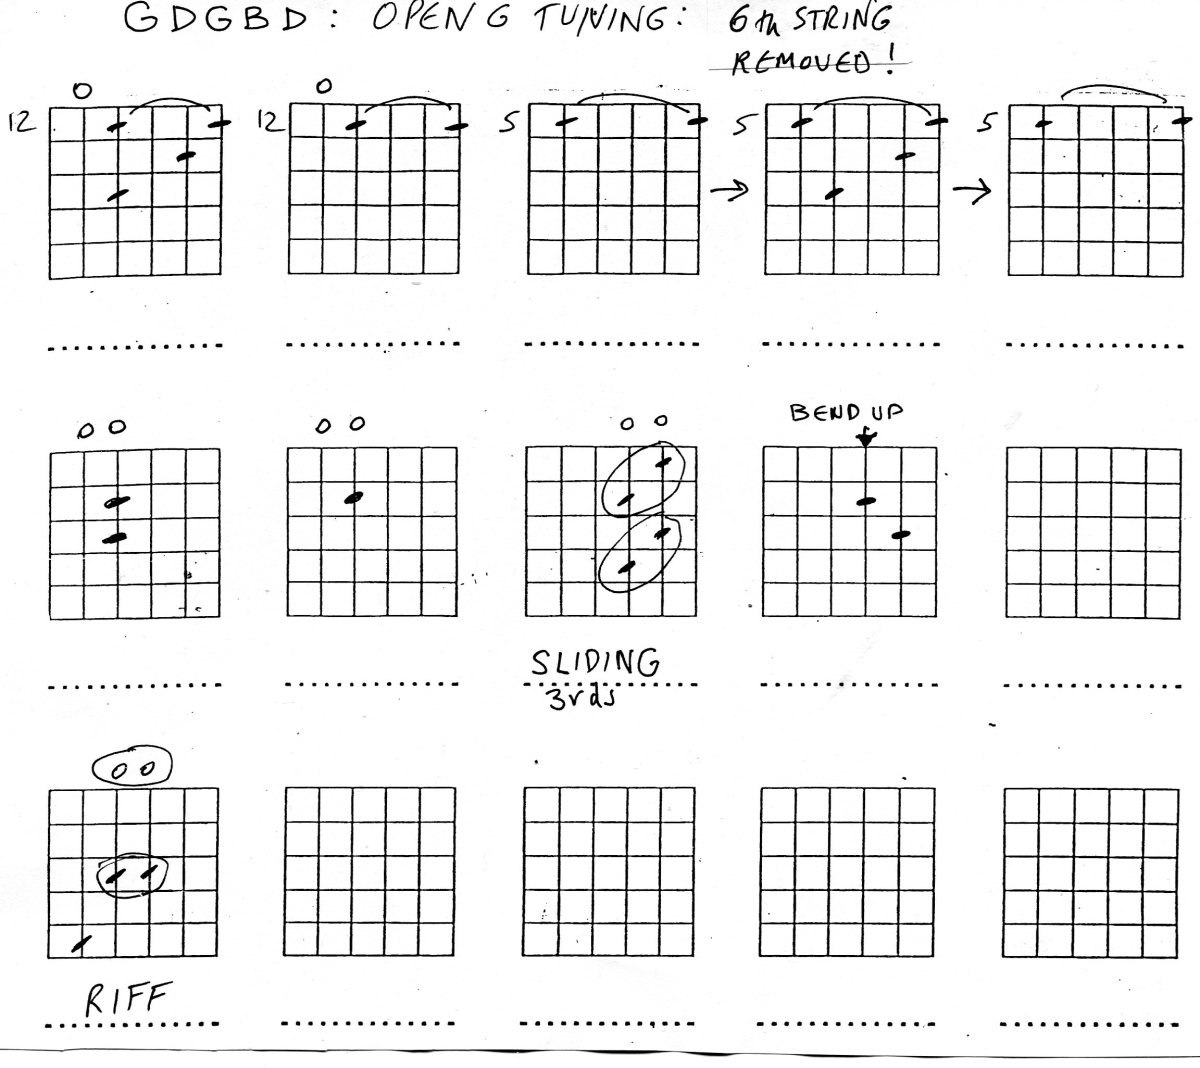 Guitar Chords in Open G Tuning : Keith Richards